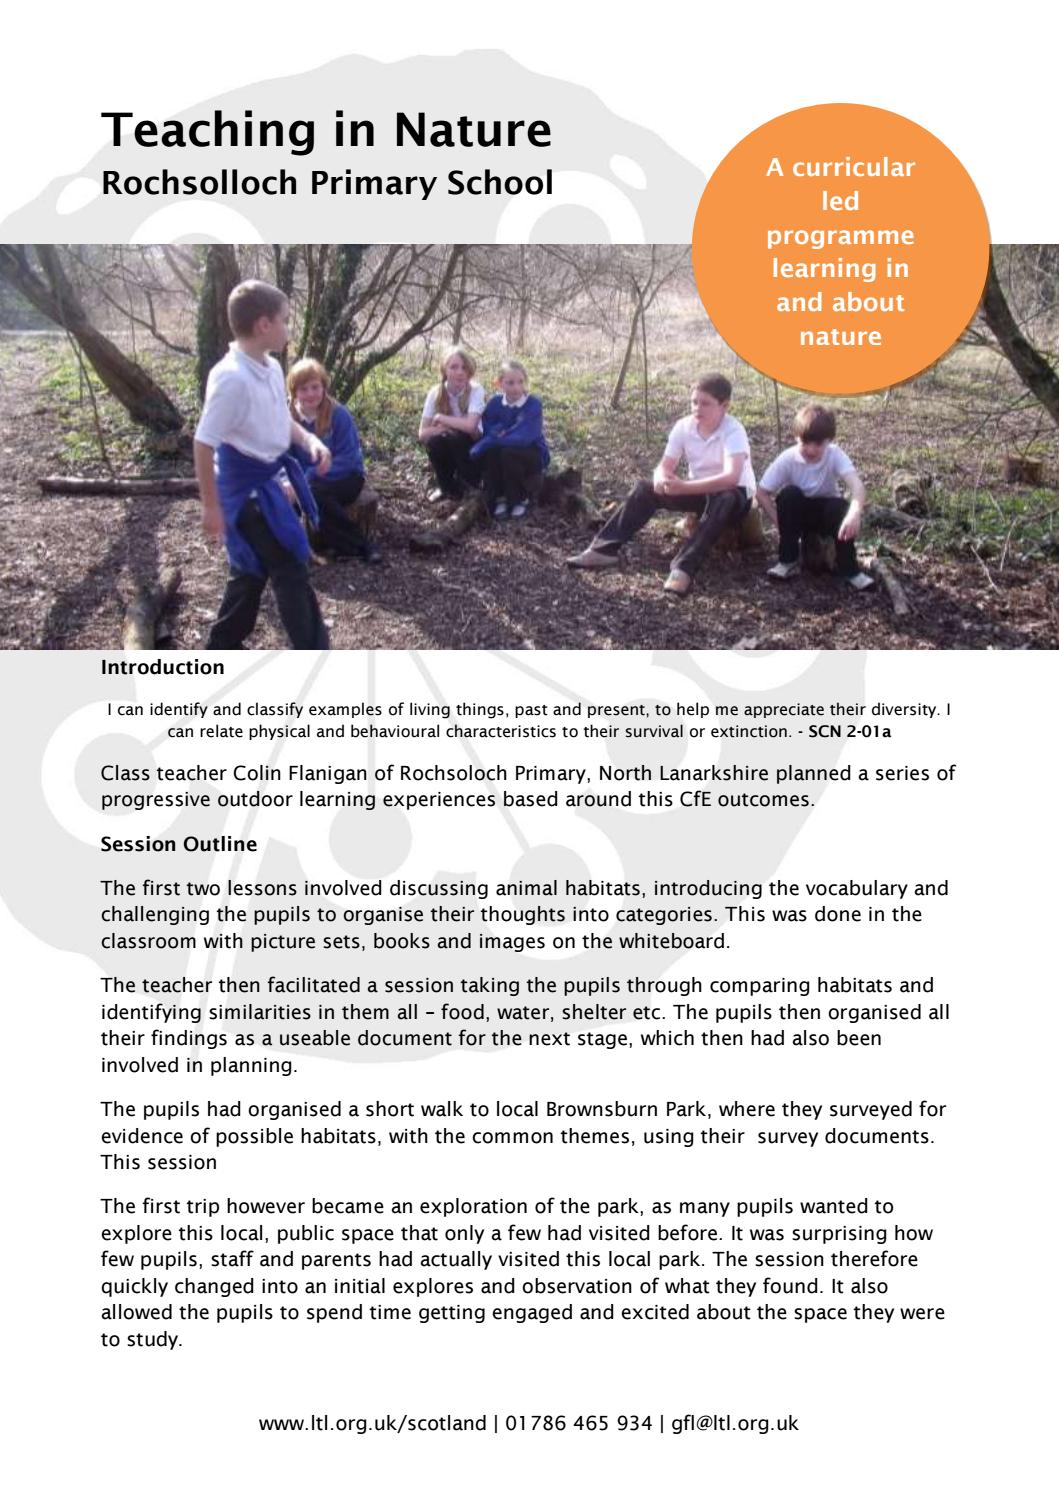 Teaching in Nature Case Study: Rochsolloch Primary School by